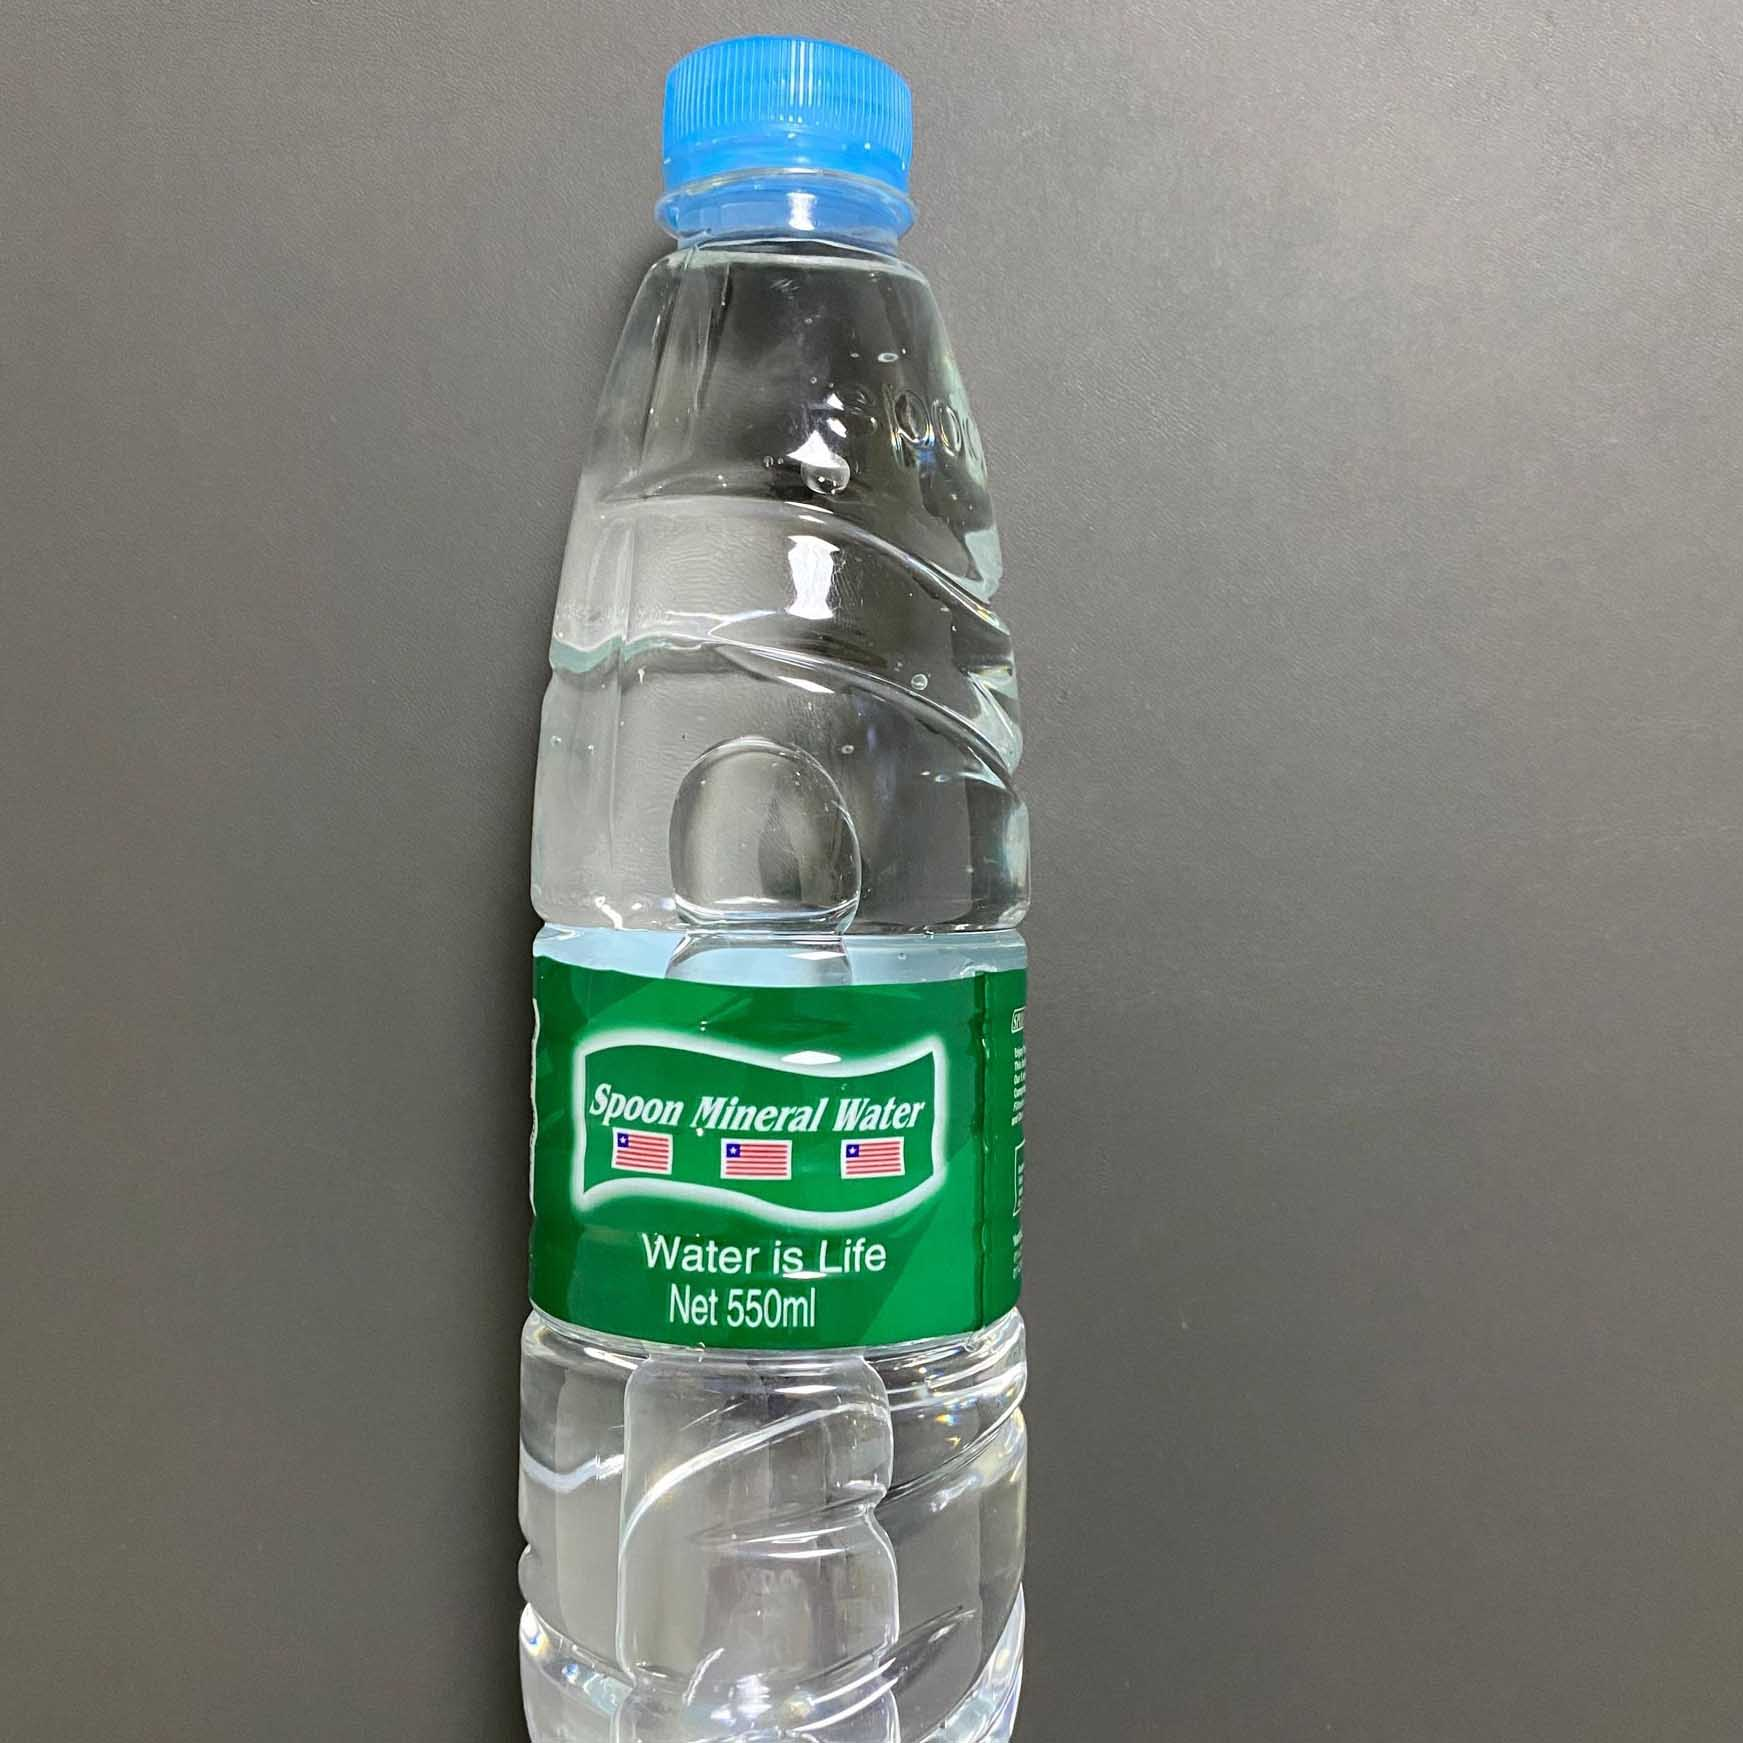 【2020 September 22】Successful production of new brand mineral water for customers from the Republic of Liberia